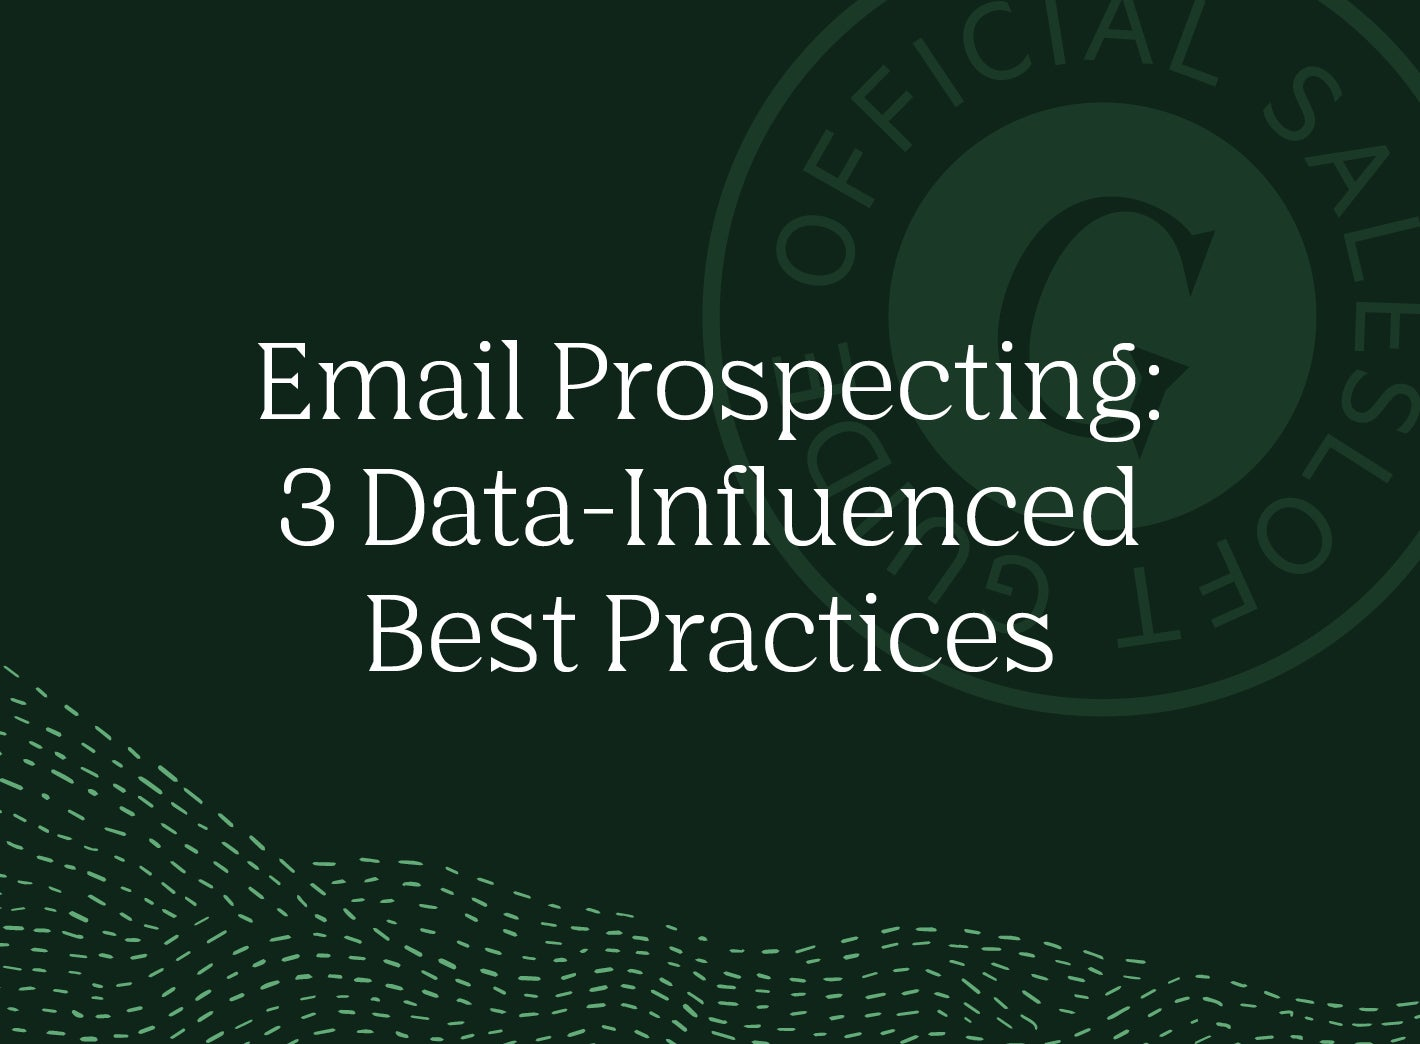 Email Prospecting 3 Data Influenced Best Practices